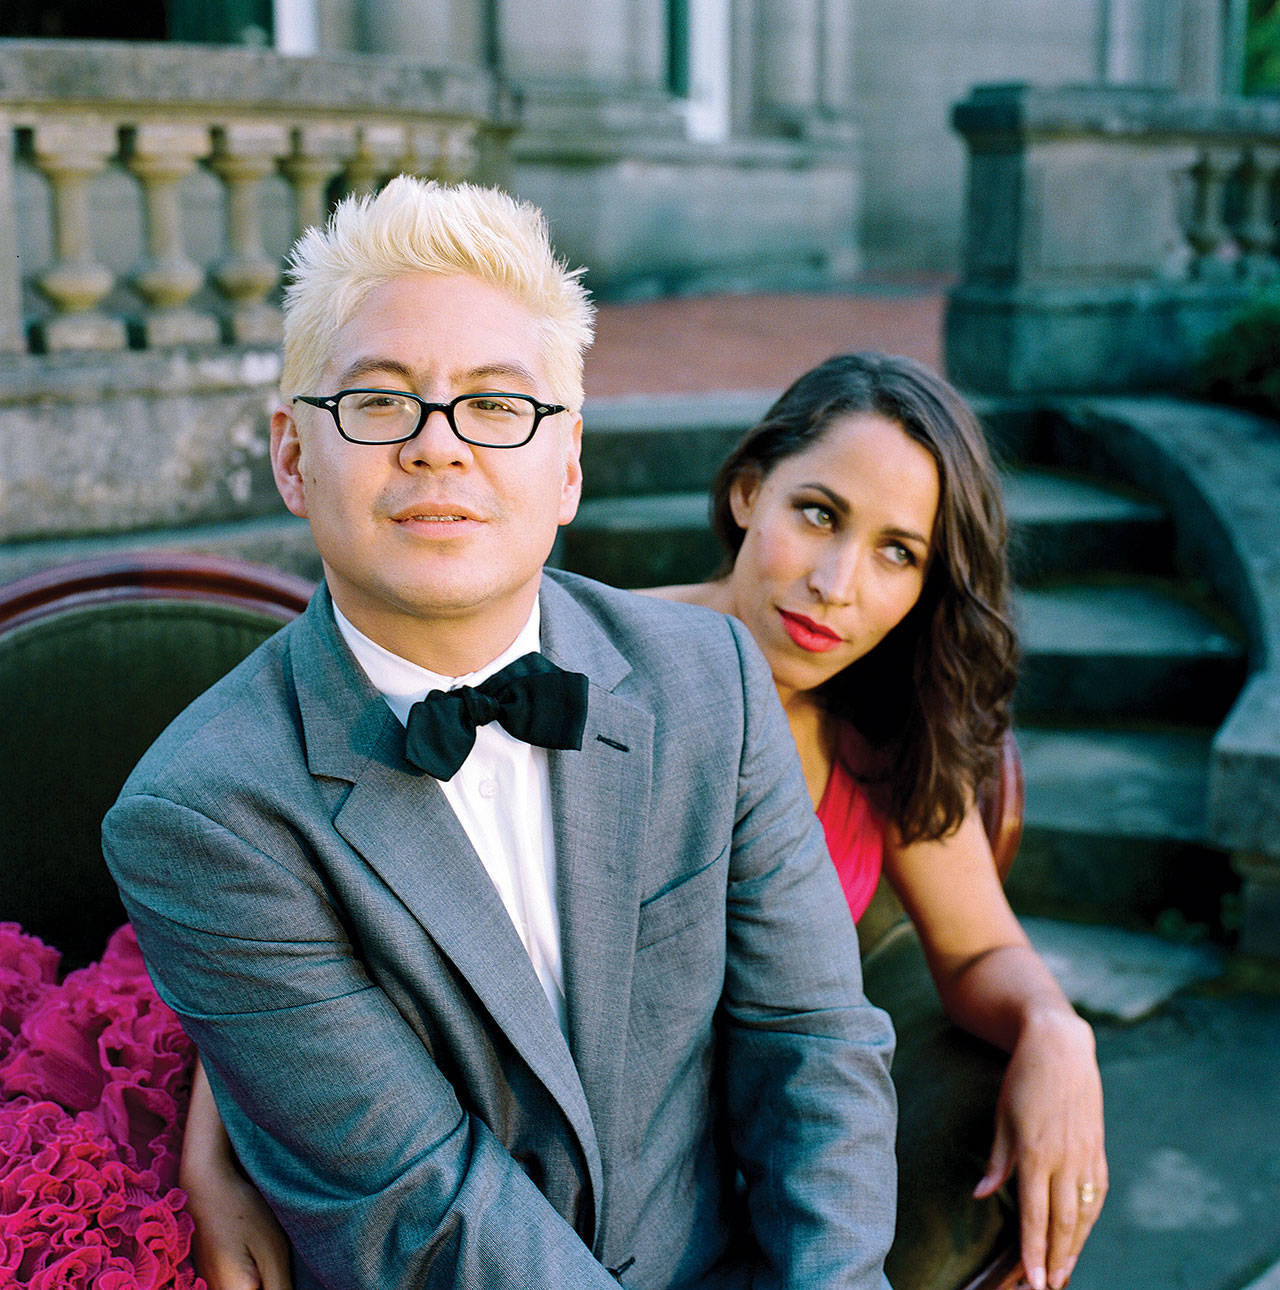 Thomas Lauderdale and China Forbes of Pink Martini. Photo by Autumn de Wilde